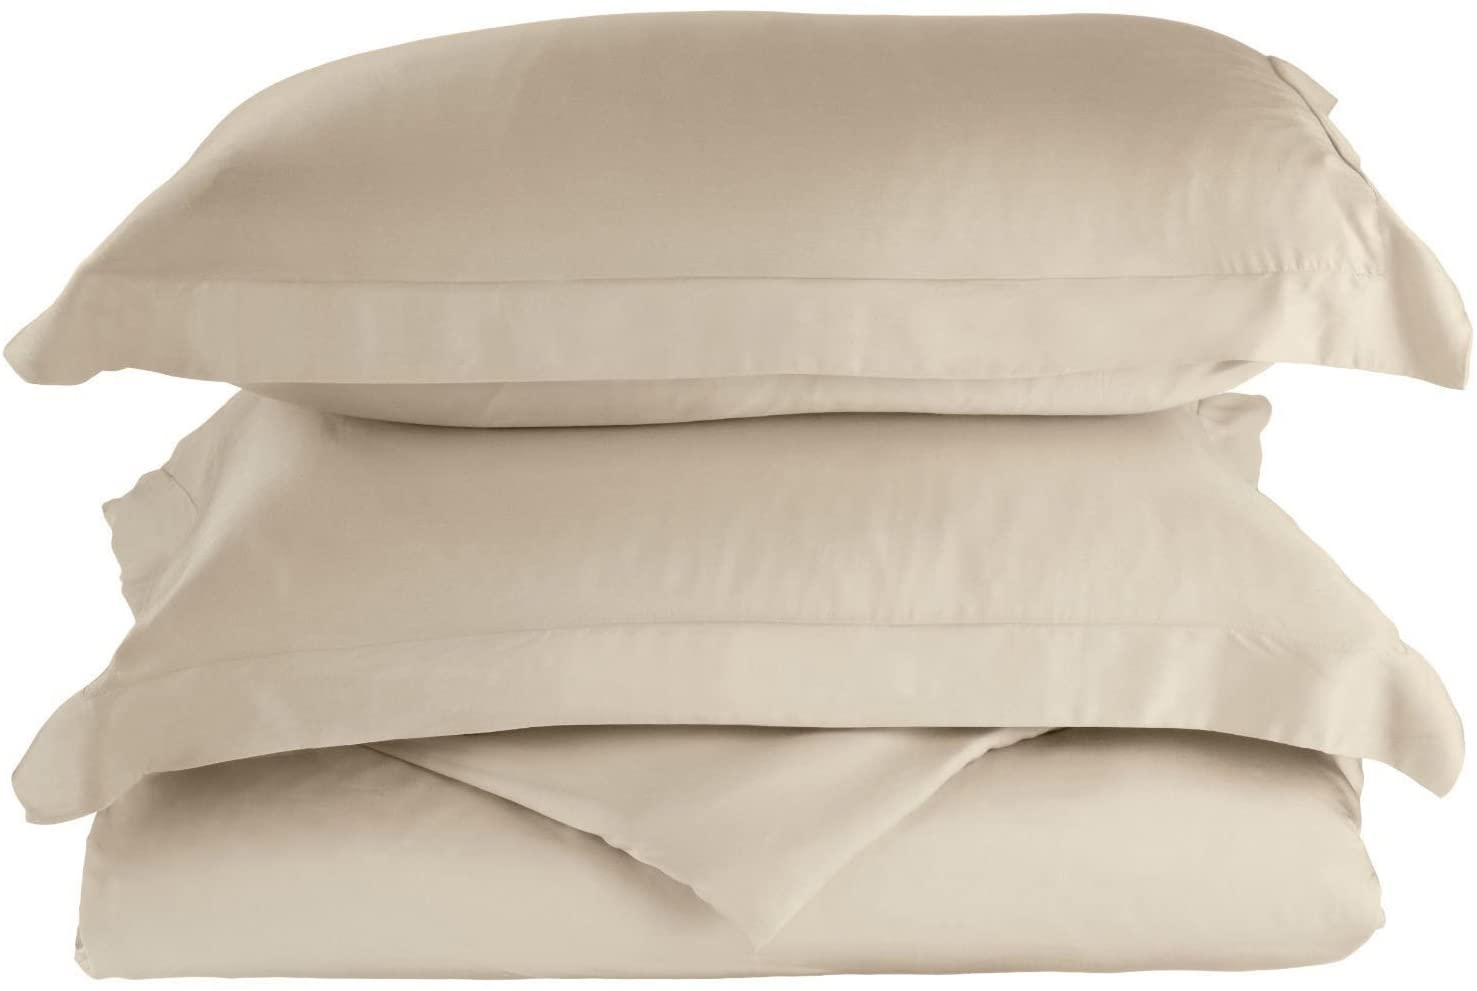 Superior 100% Rayon from Bamboo, Extremely comfortable, softer than cotton, King/ California King Duvet Cover Set, Solid